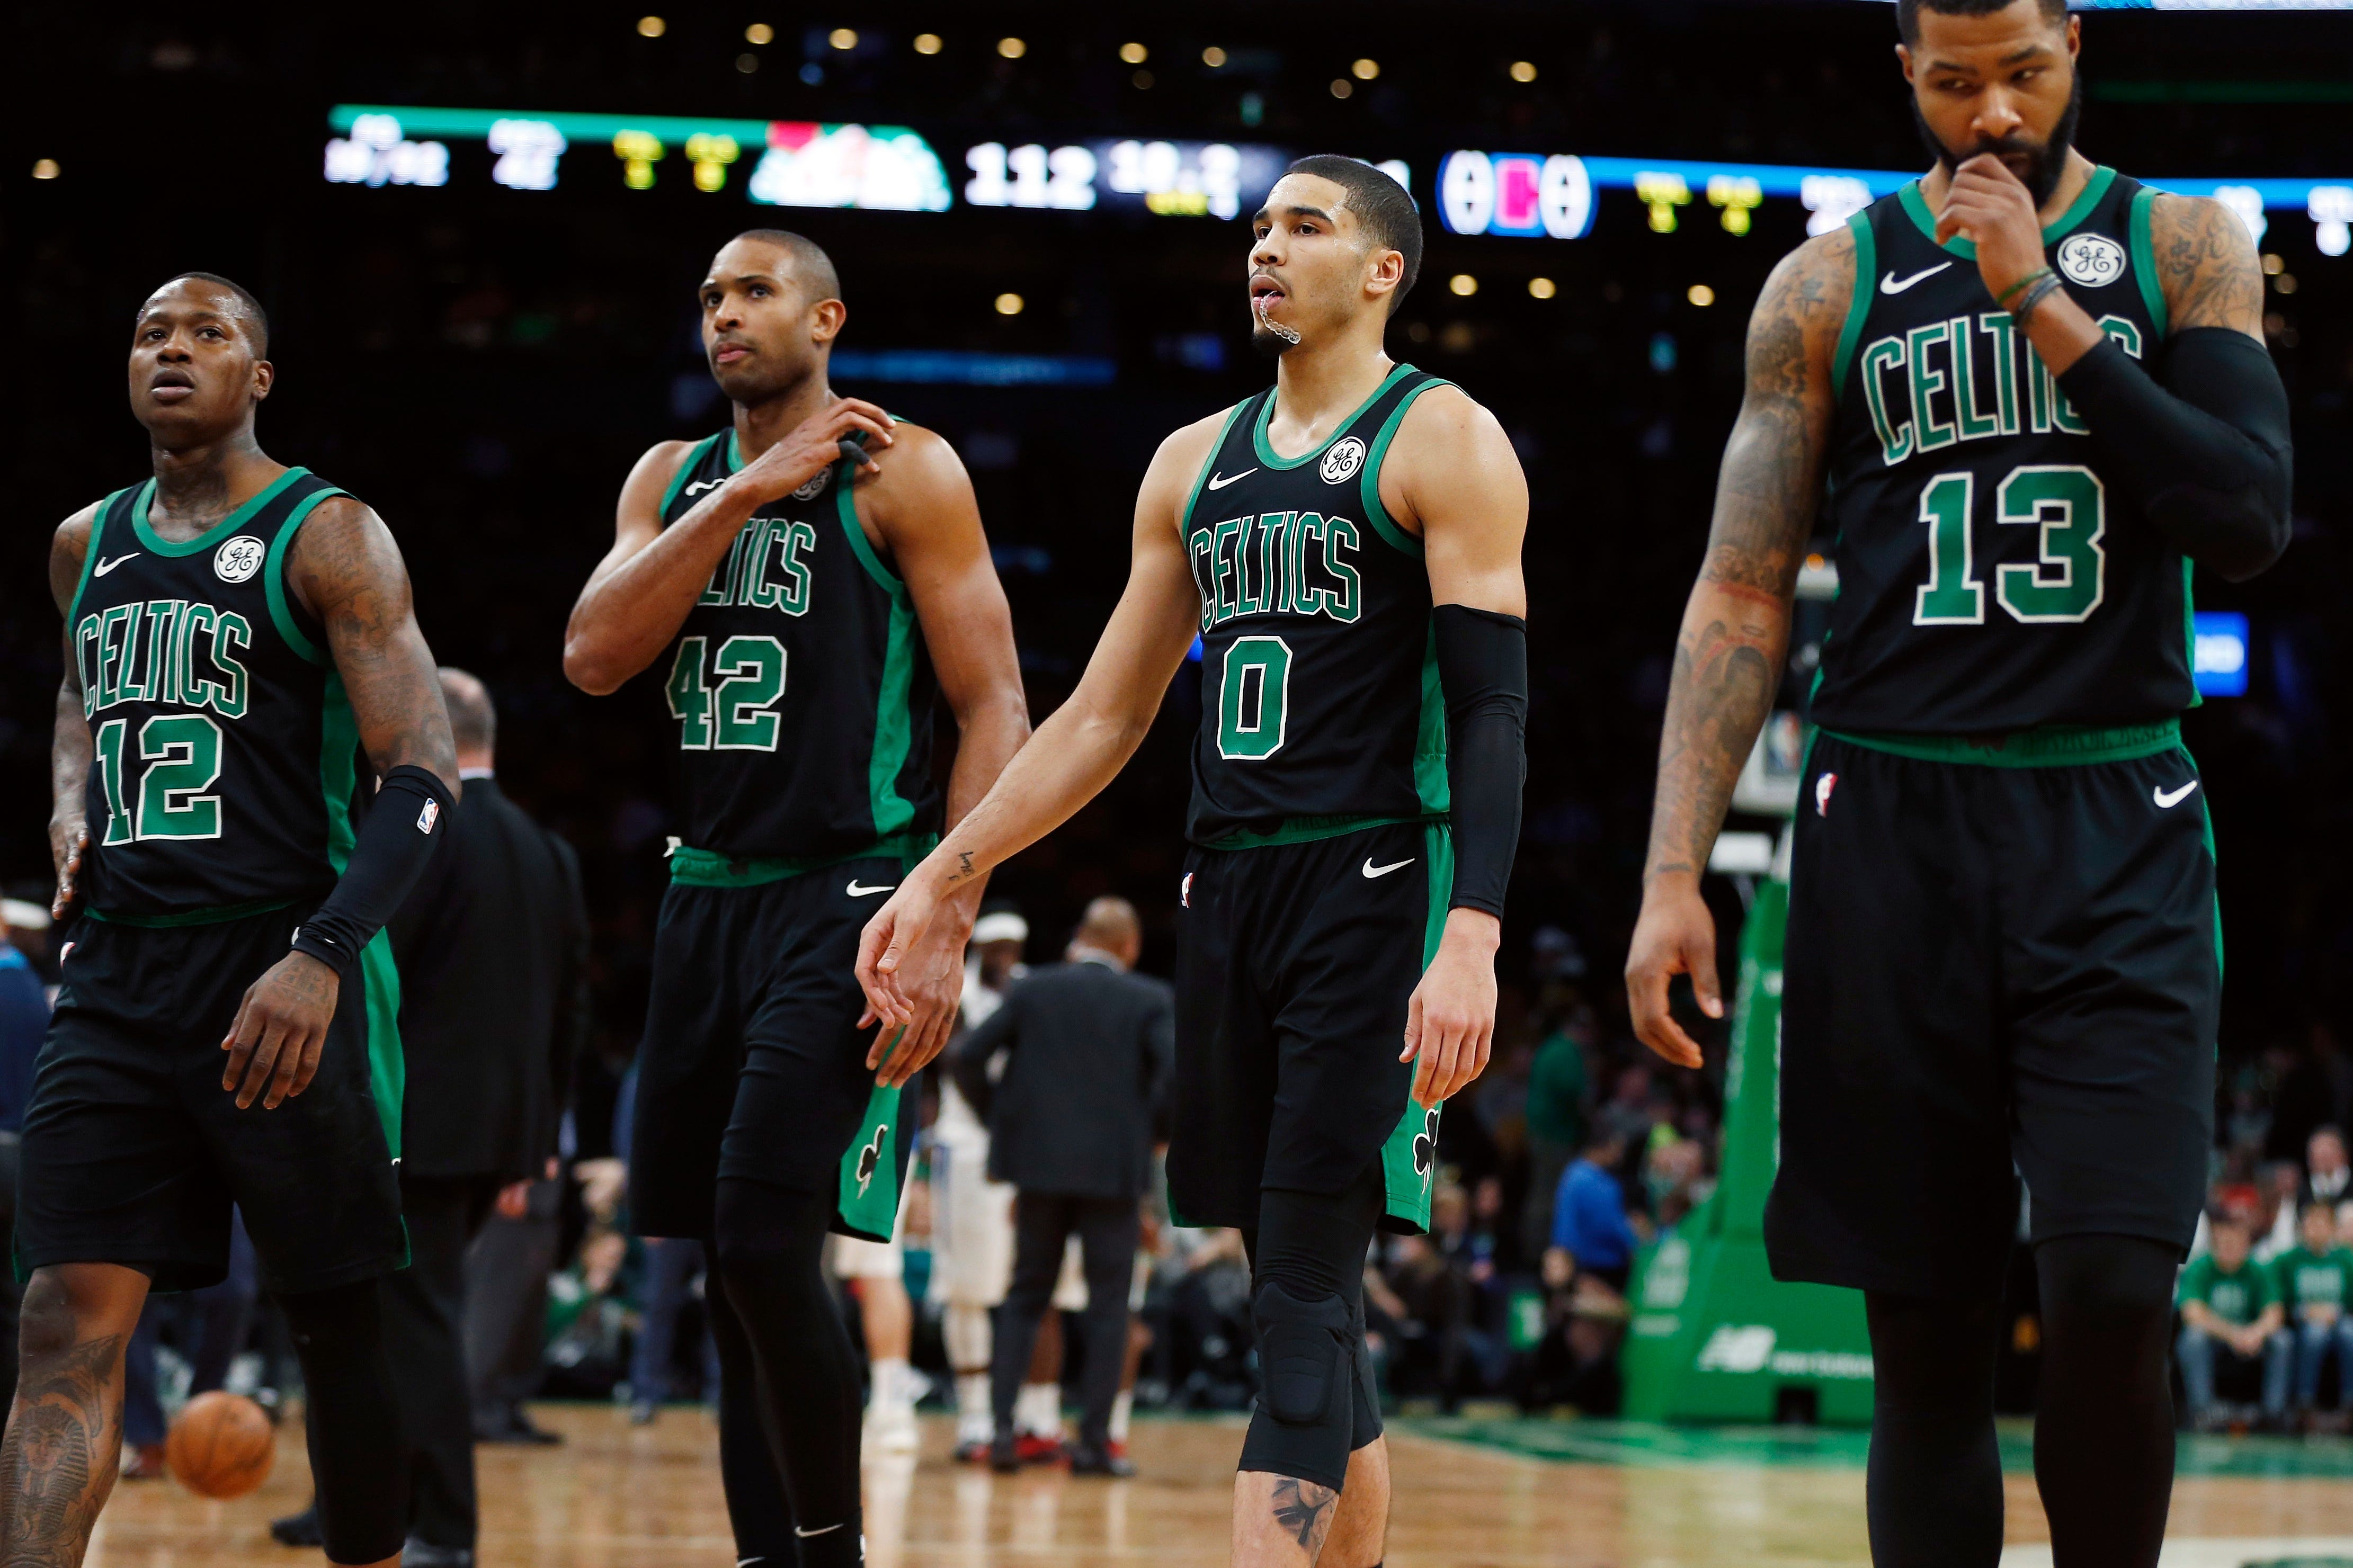 Opinion: The Celtics are a mess right now and it could get worse tonight